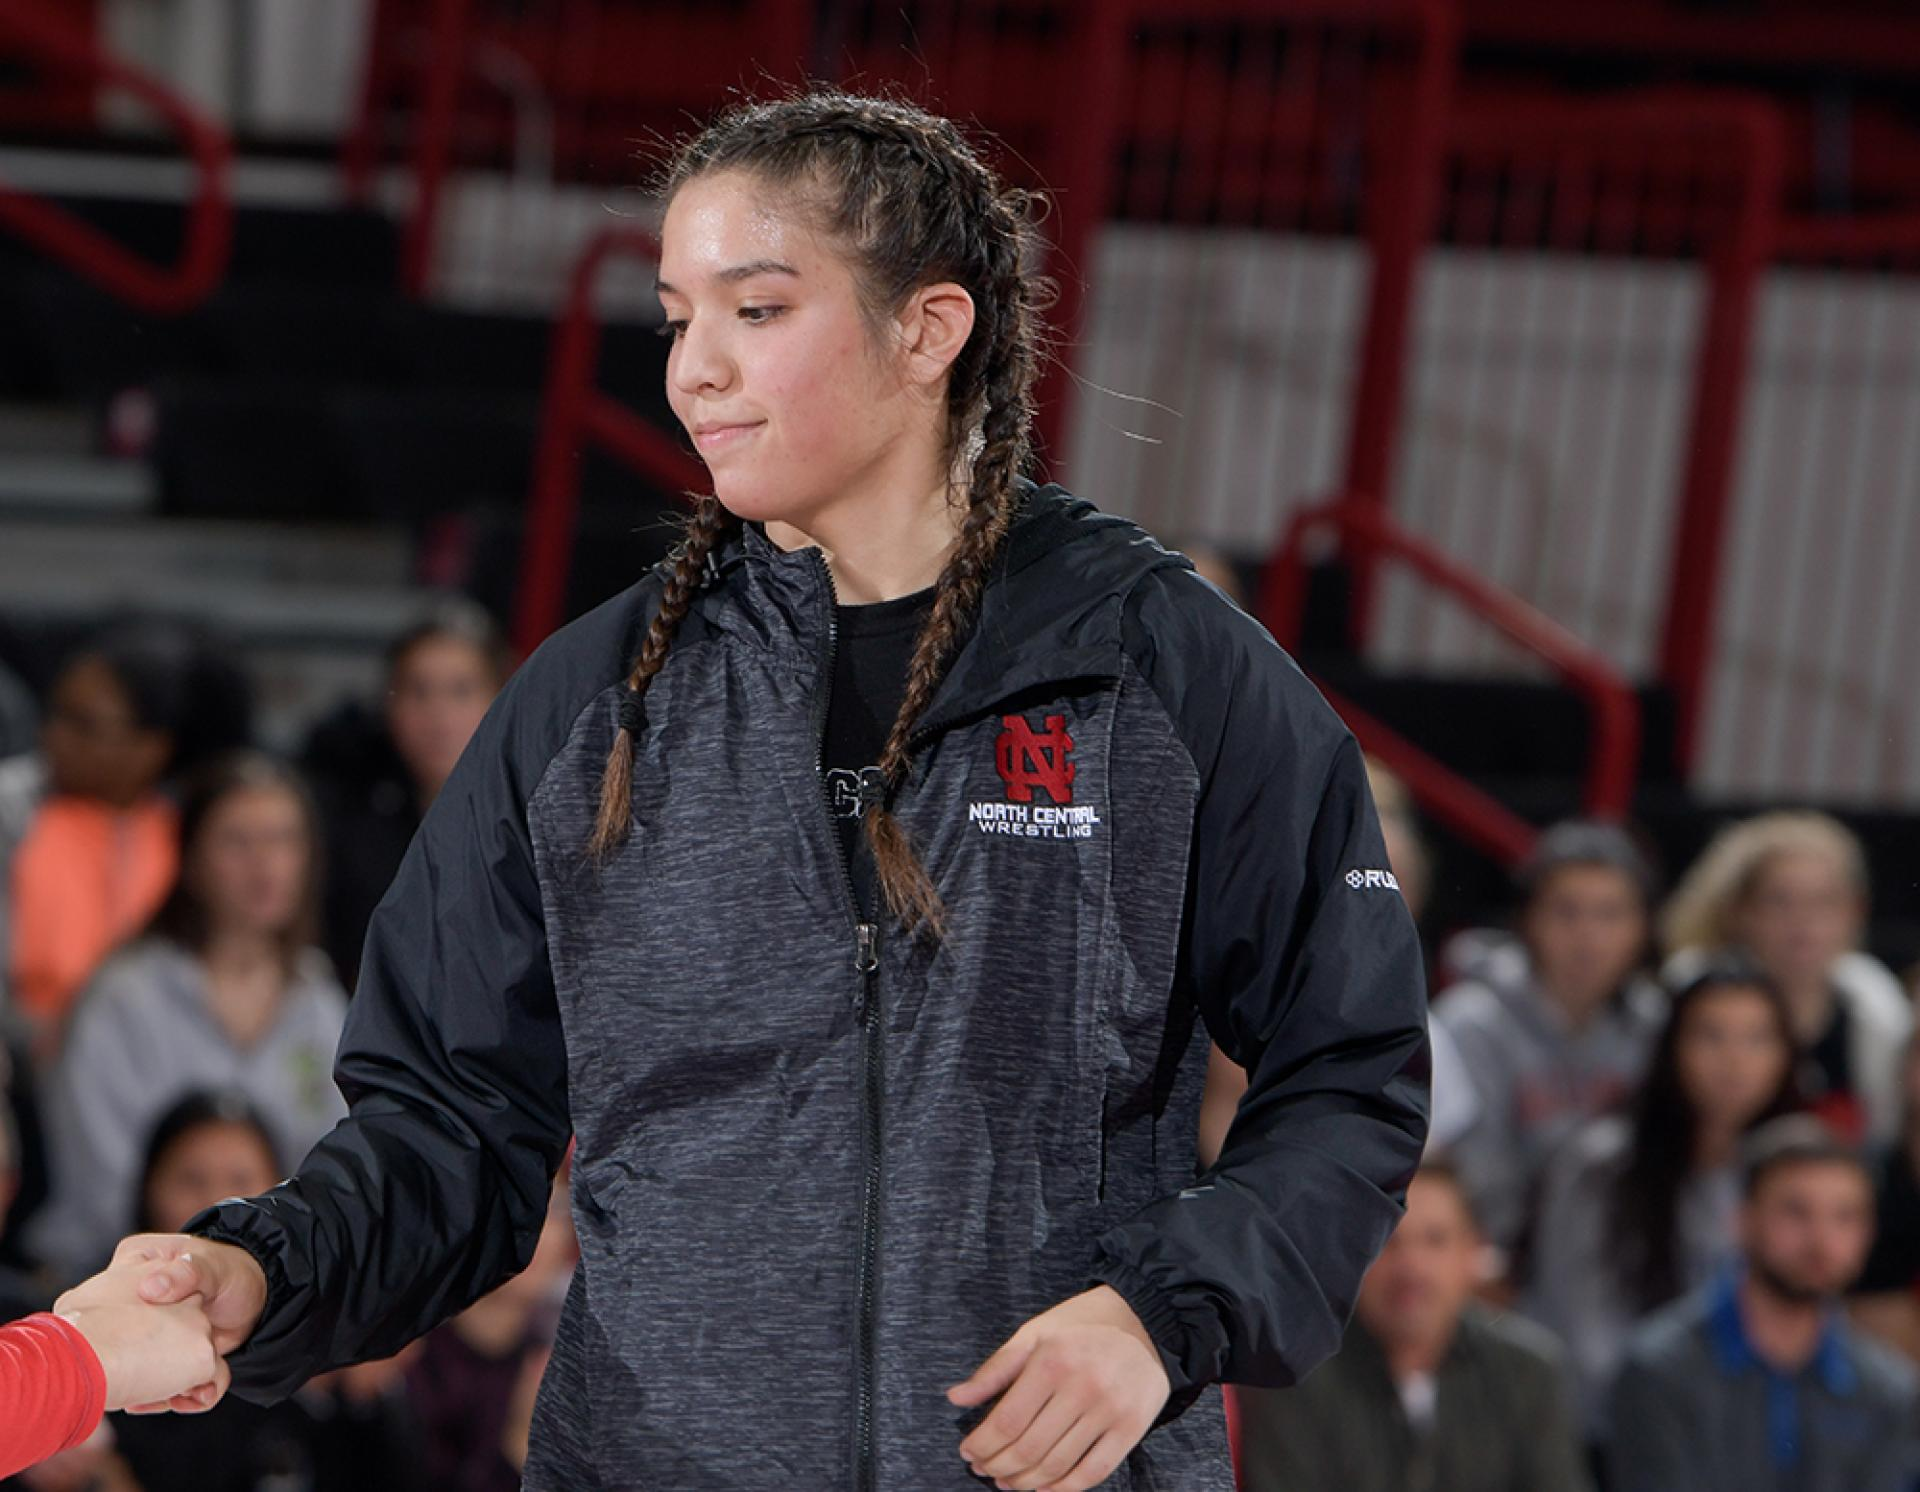 Amanda Martinez before a North Central College women's wrestling meet.